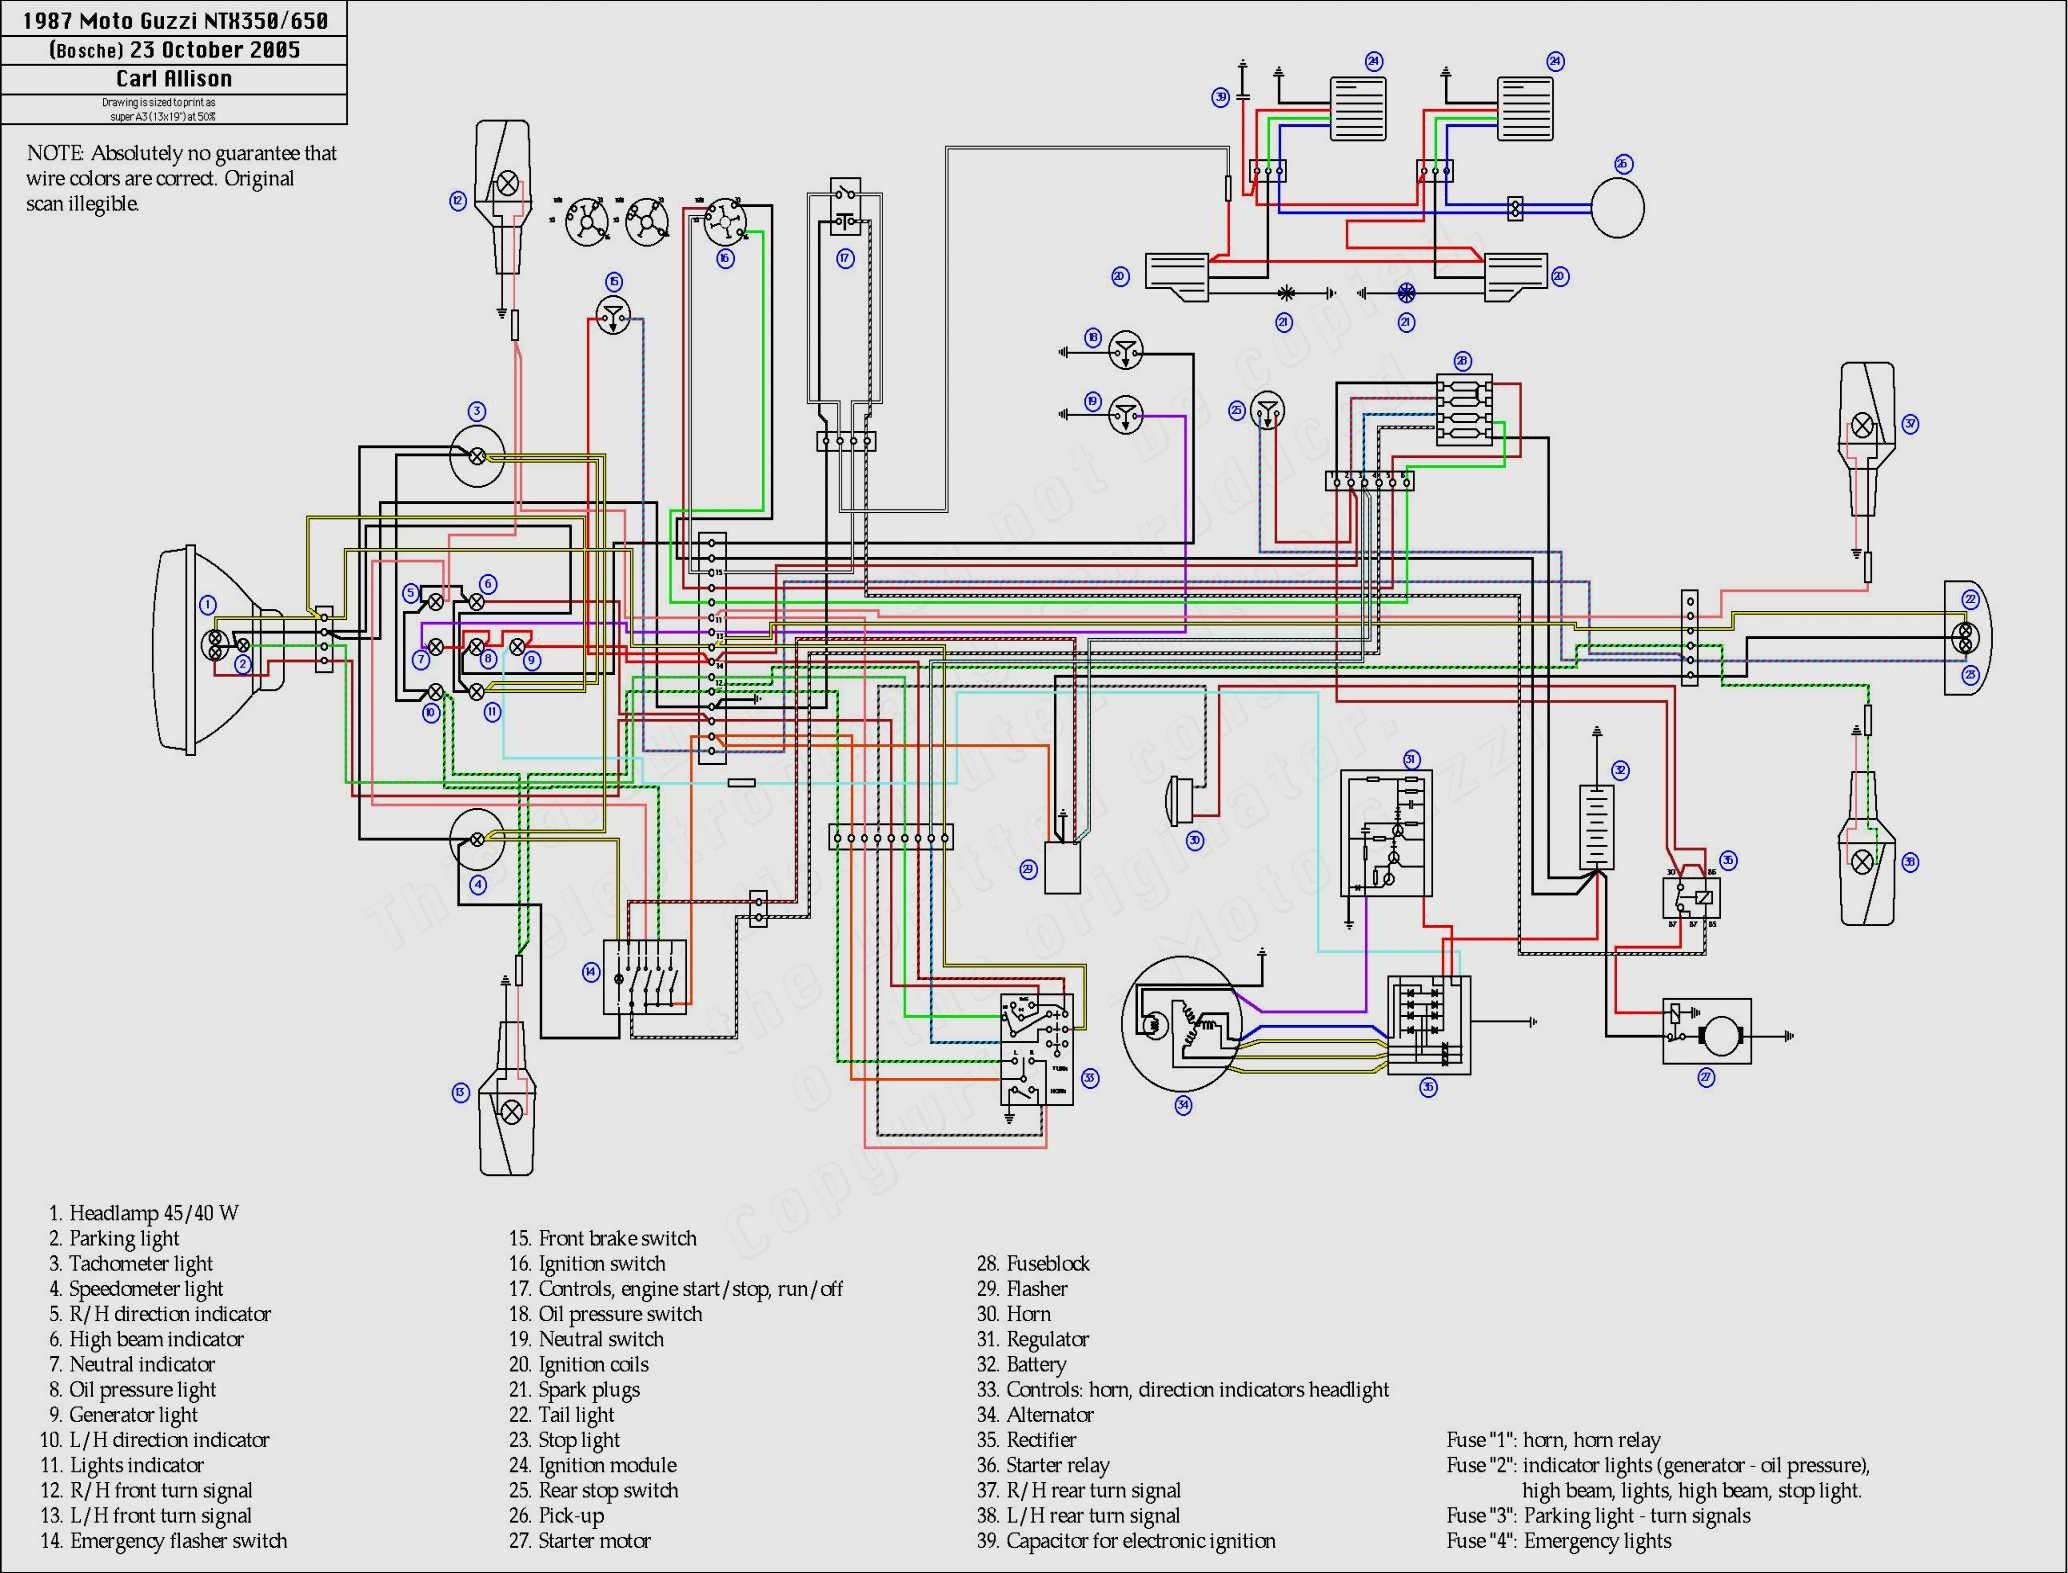 Diagramsample Diagramformats Diagramtemplate Electrical Diagram Diagram Electrical Wiring Diagram